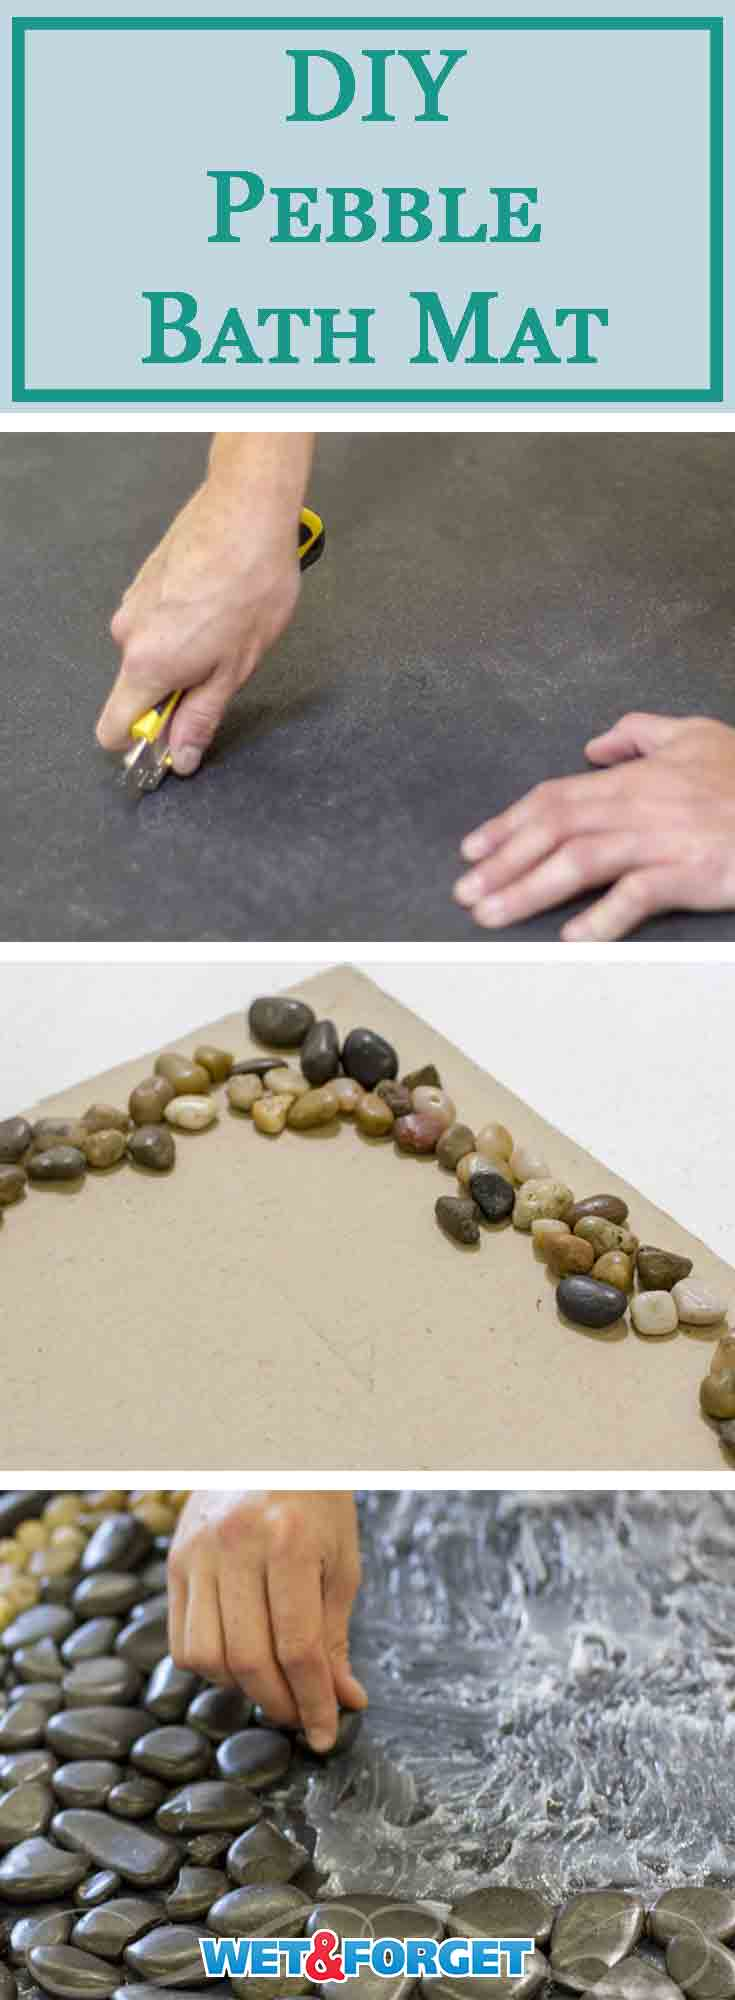 Renovating your bathroom takes too much time and the expenses add up quickly. This easy DIY pebble bath mat can update the look of your bathroom without spending too much. Check out our quick step by step pebble bath mat tutorial!